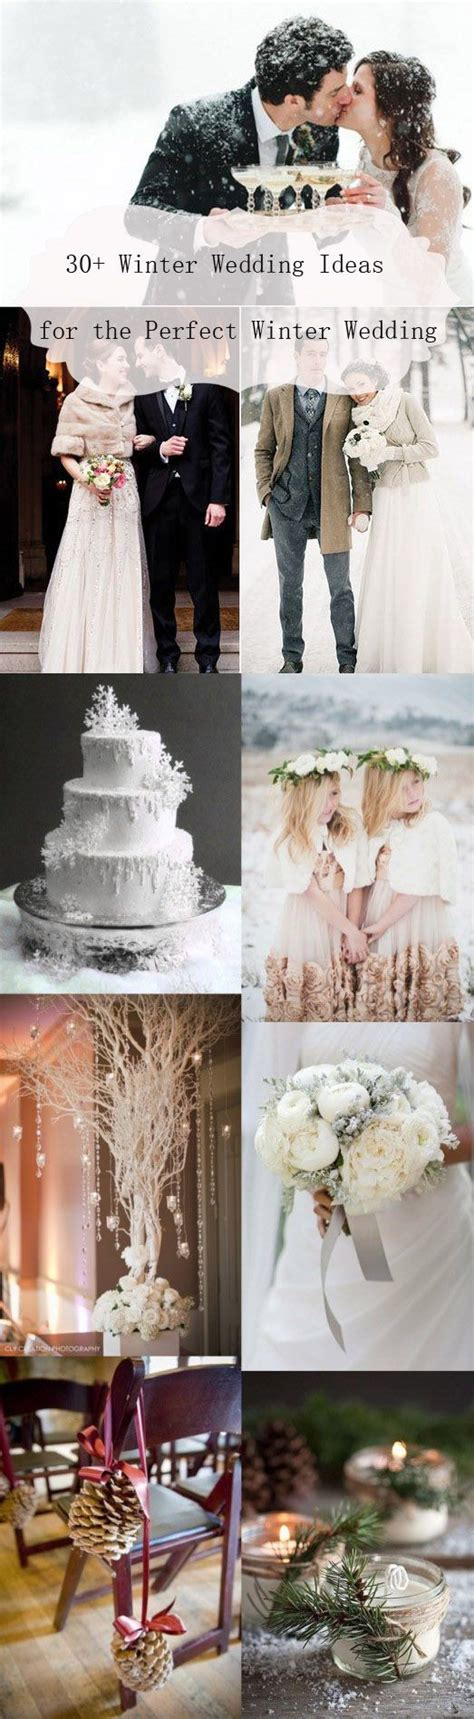 themes for the story winter dreams 30 winter wedding ideas for the perfect winter weddings